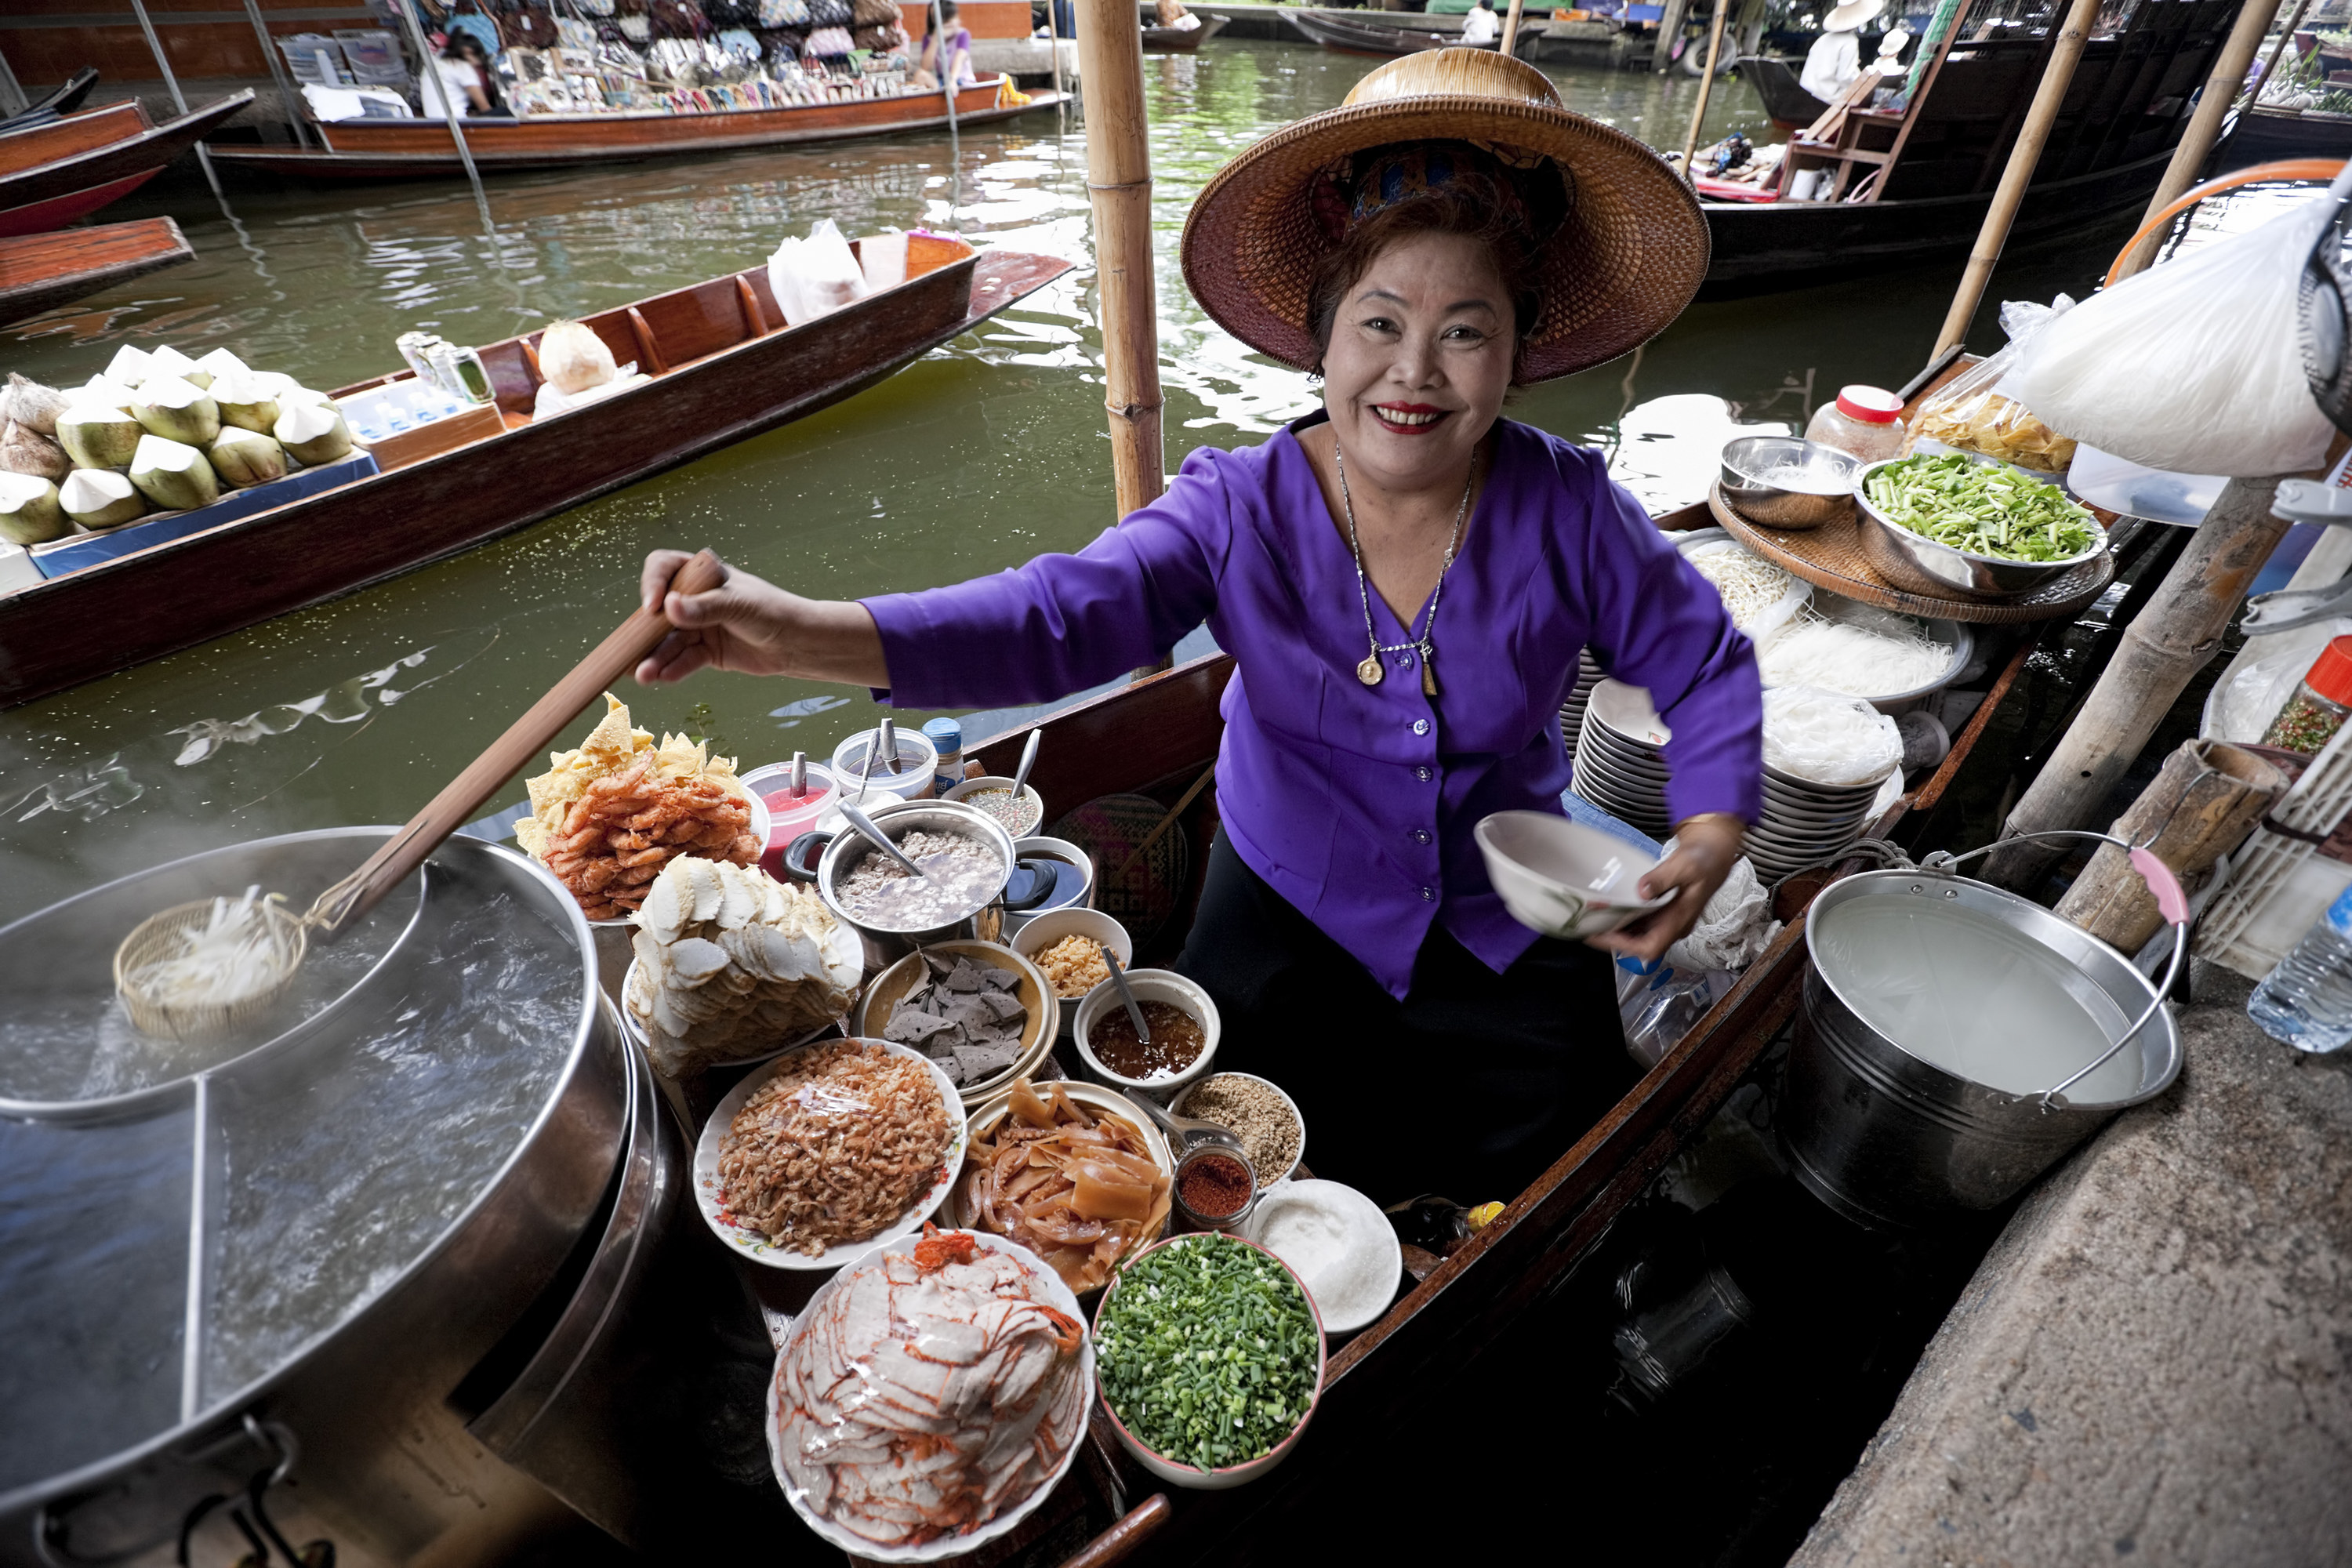 A street foot-vending woman smiles broadly at the camera. She is surrounded by various ingredients and holds a serving of noodles.